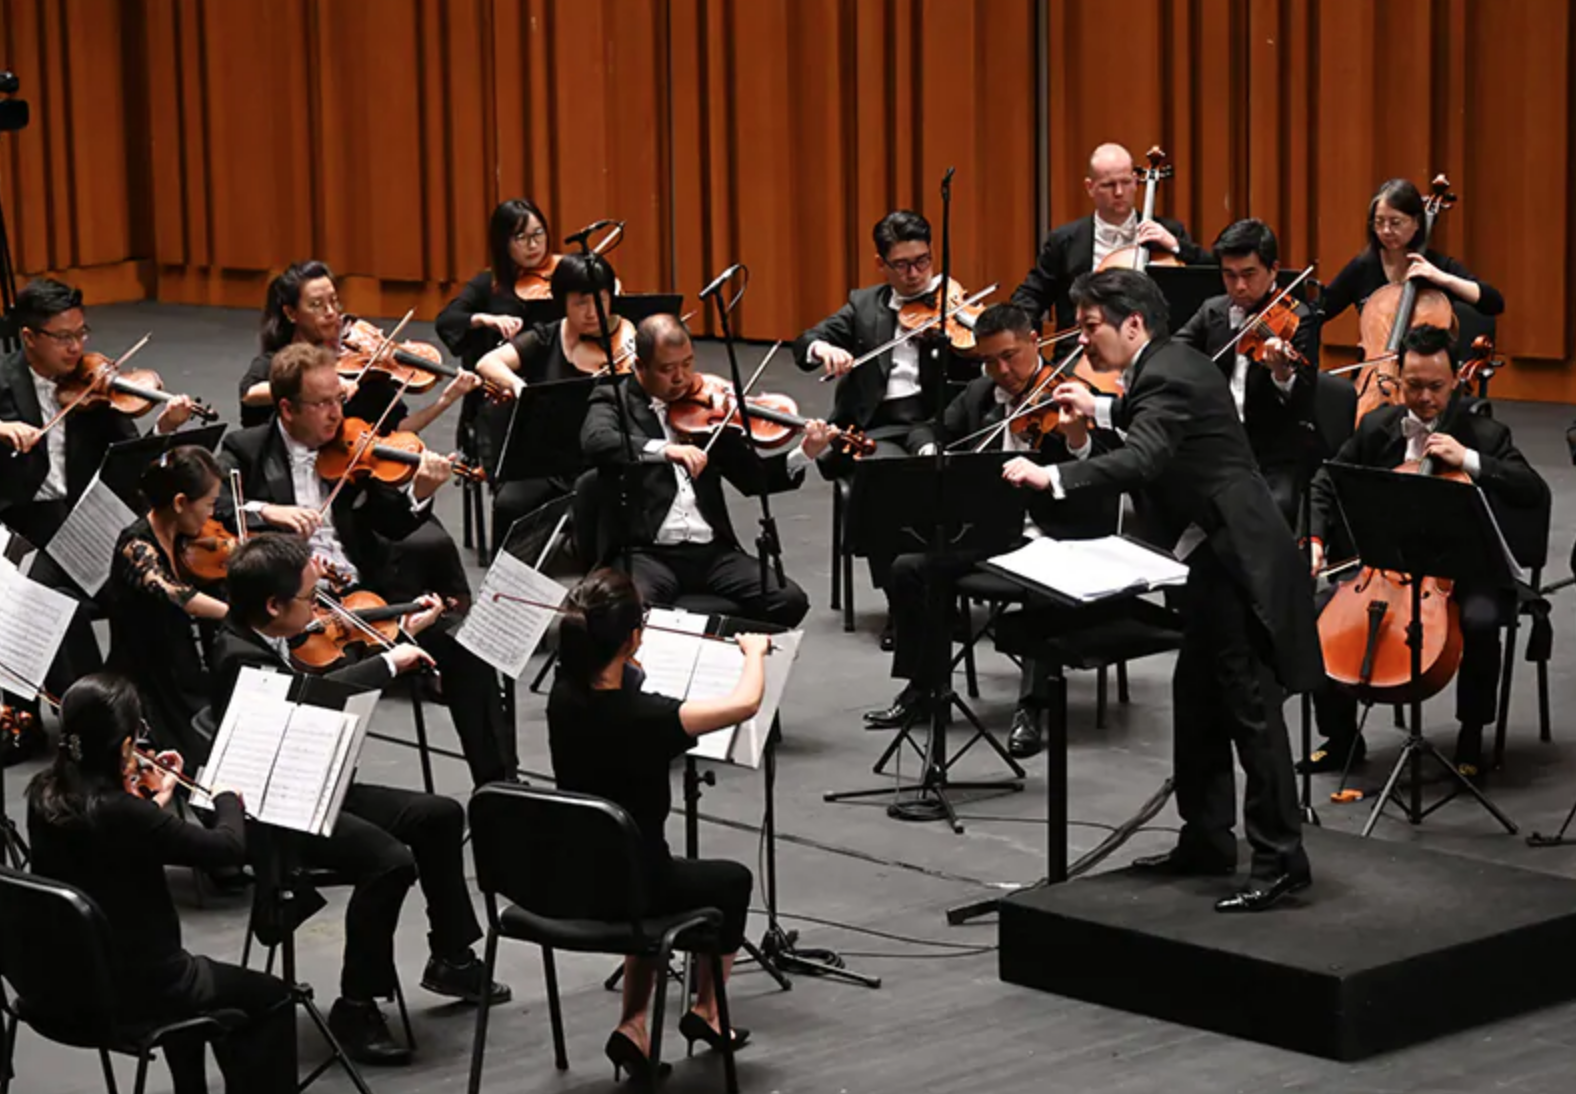 Macao Orchestra Concert Hall